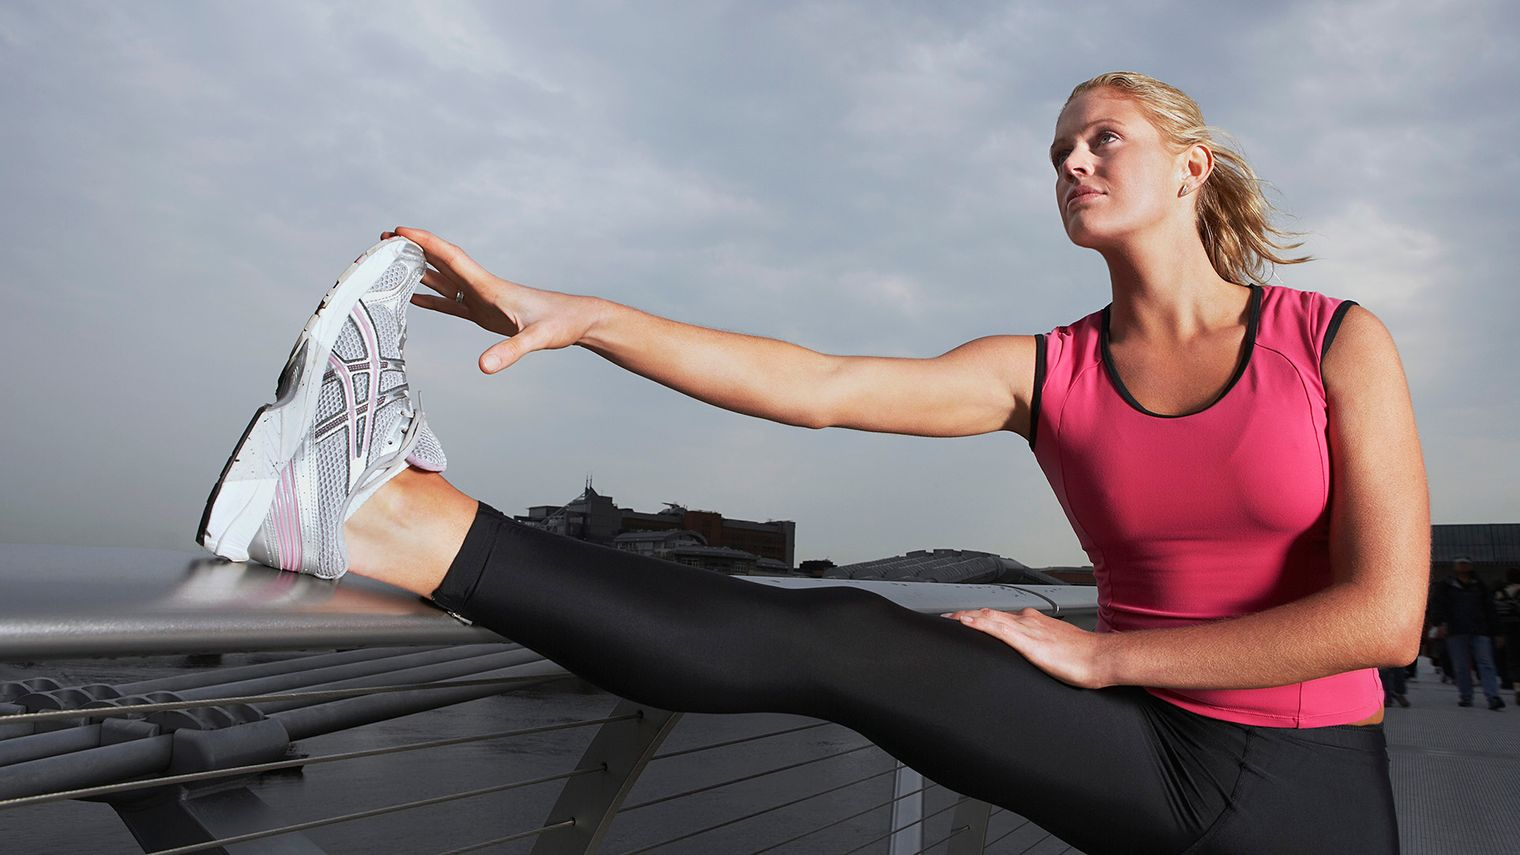 Picture of female in sportswear stretching in exterior with foot on railing.